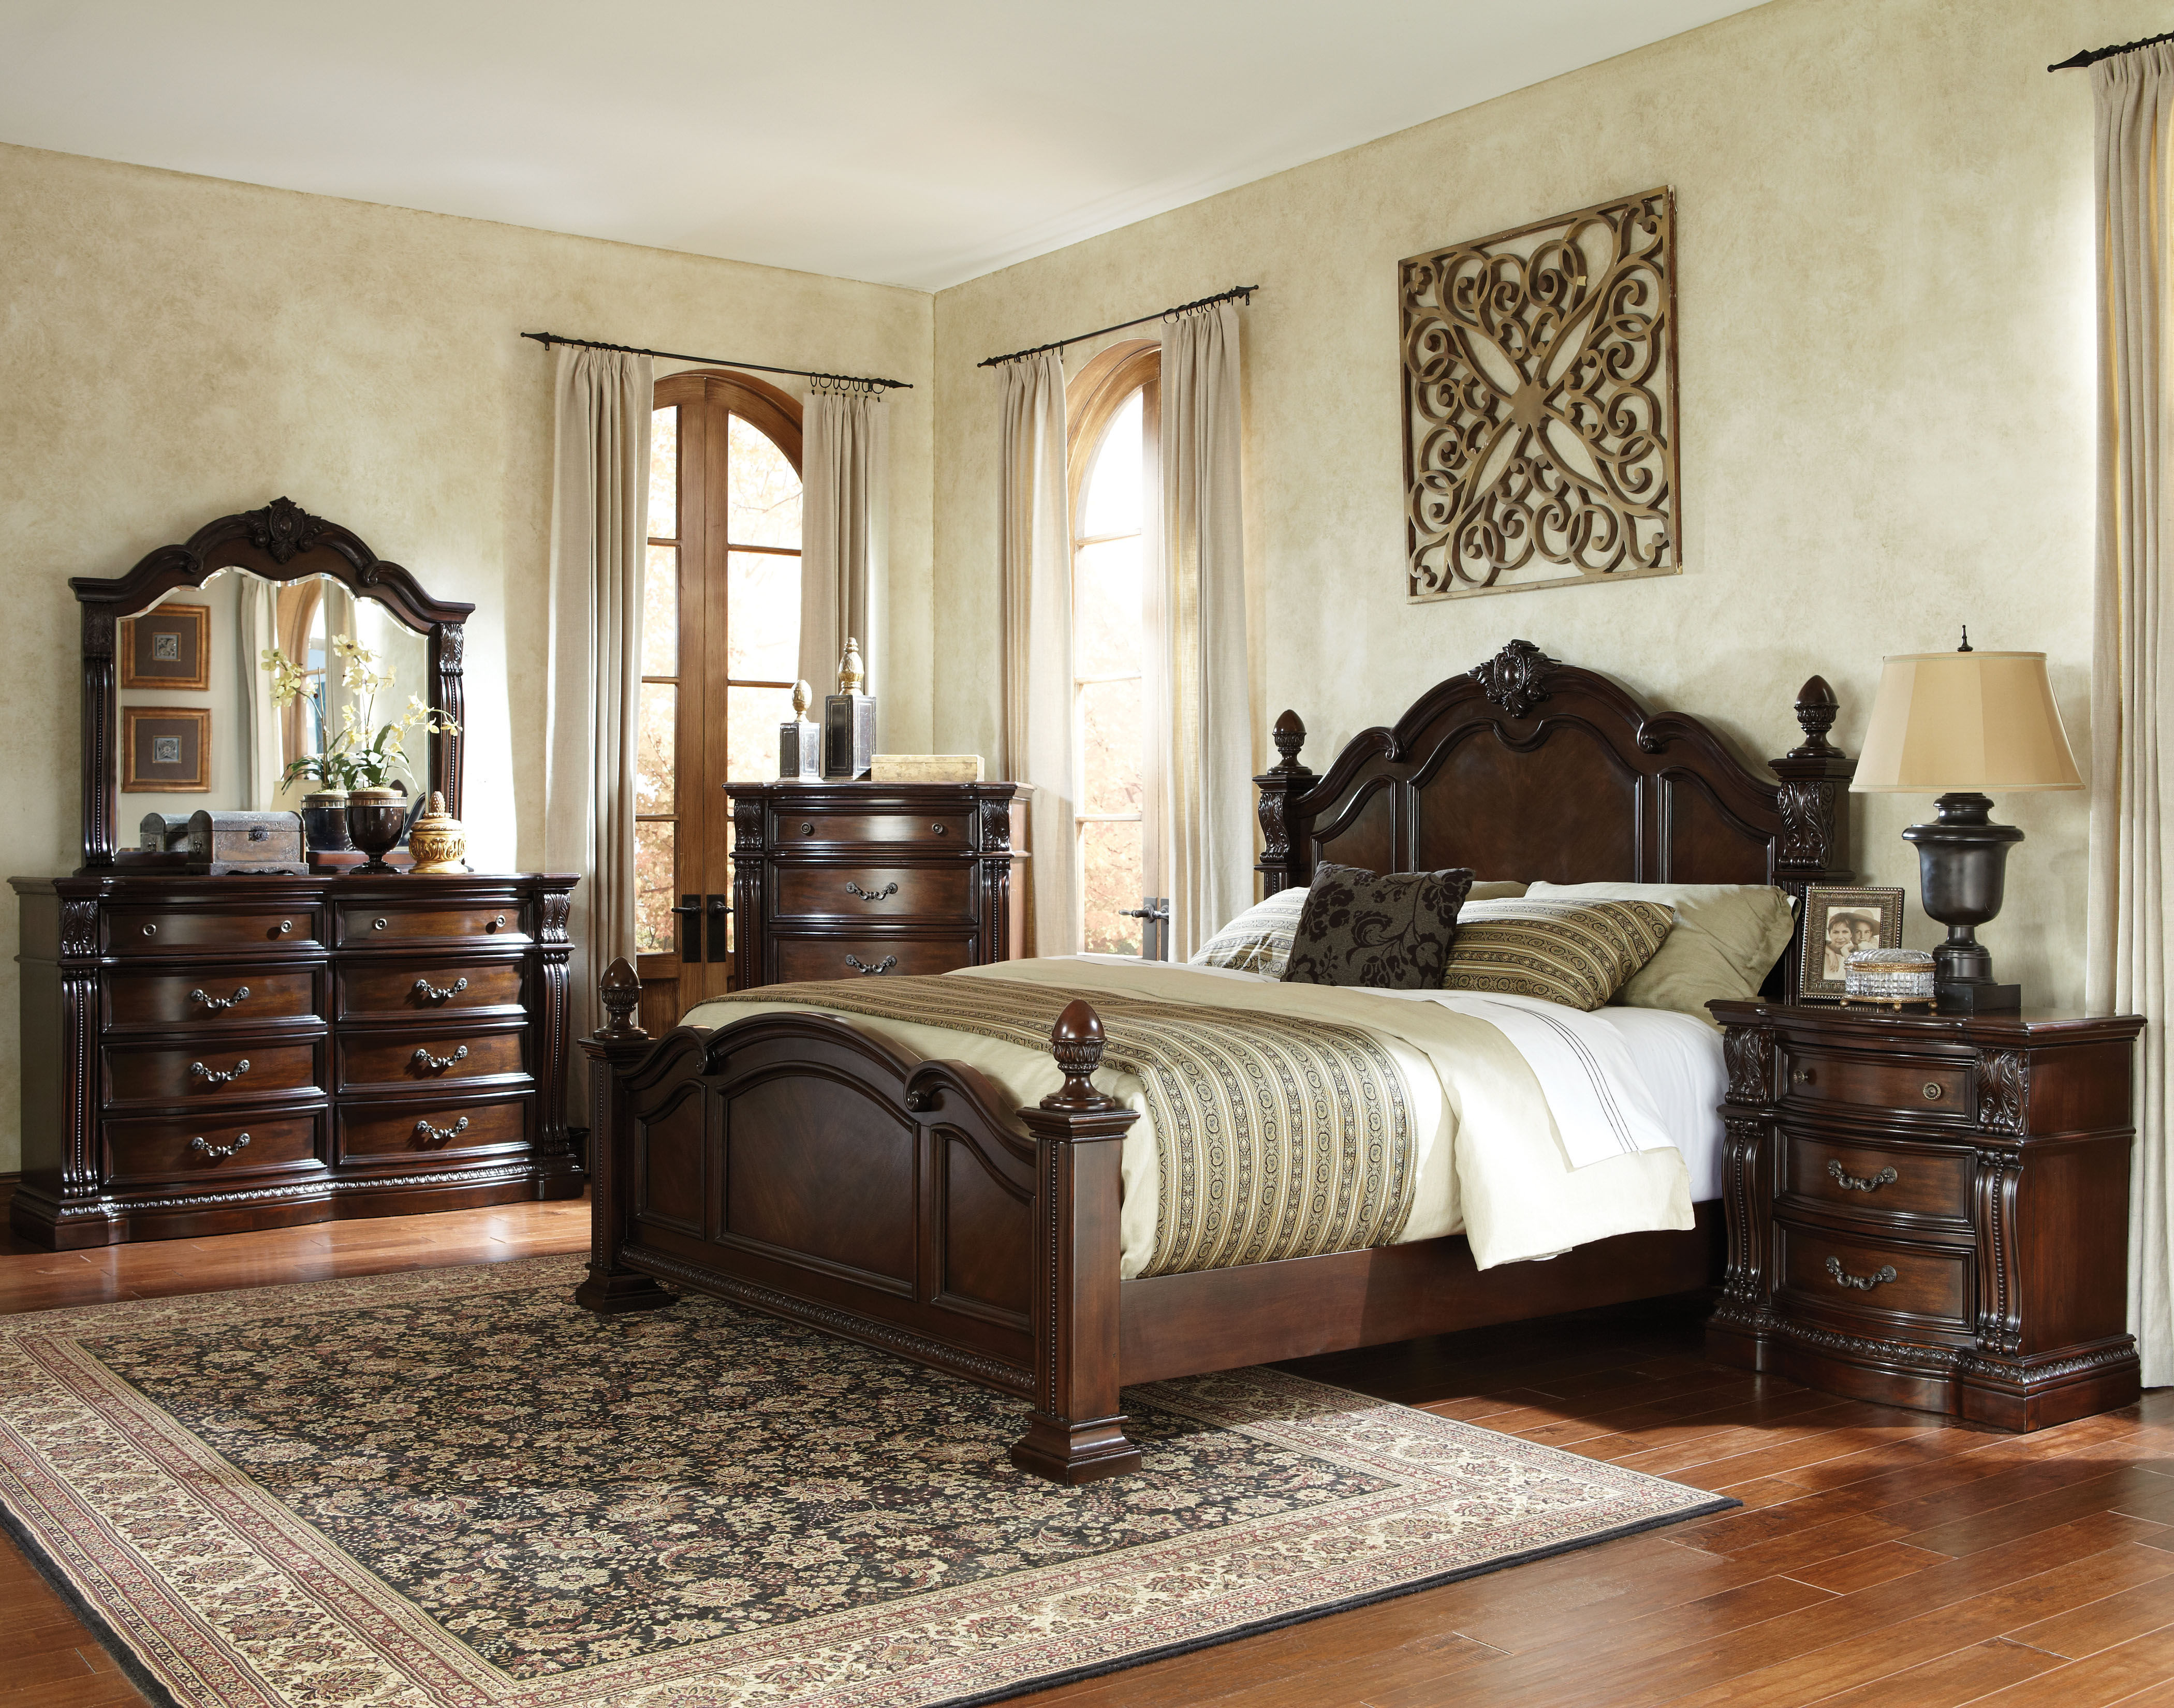 Best ideas about Master Bedroom Sets . Save or Pin Churchill Traditional Brown Hardwood Master Bedroom Set Now.